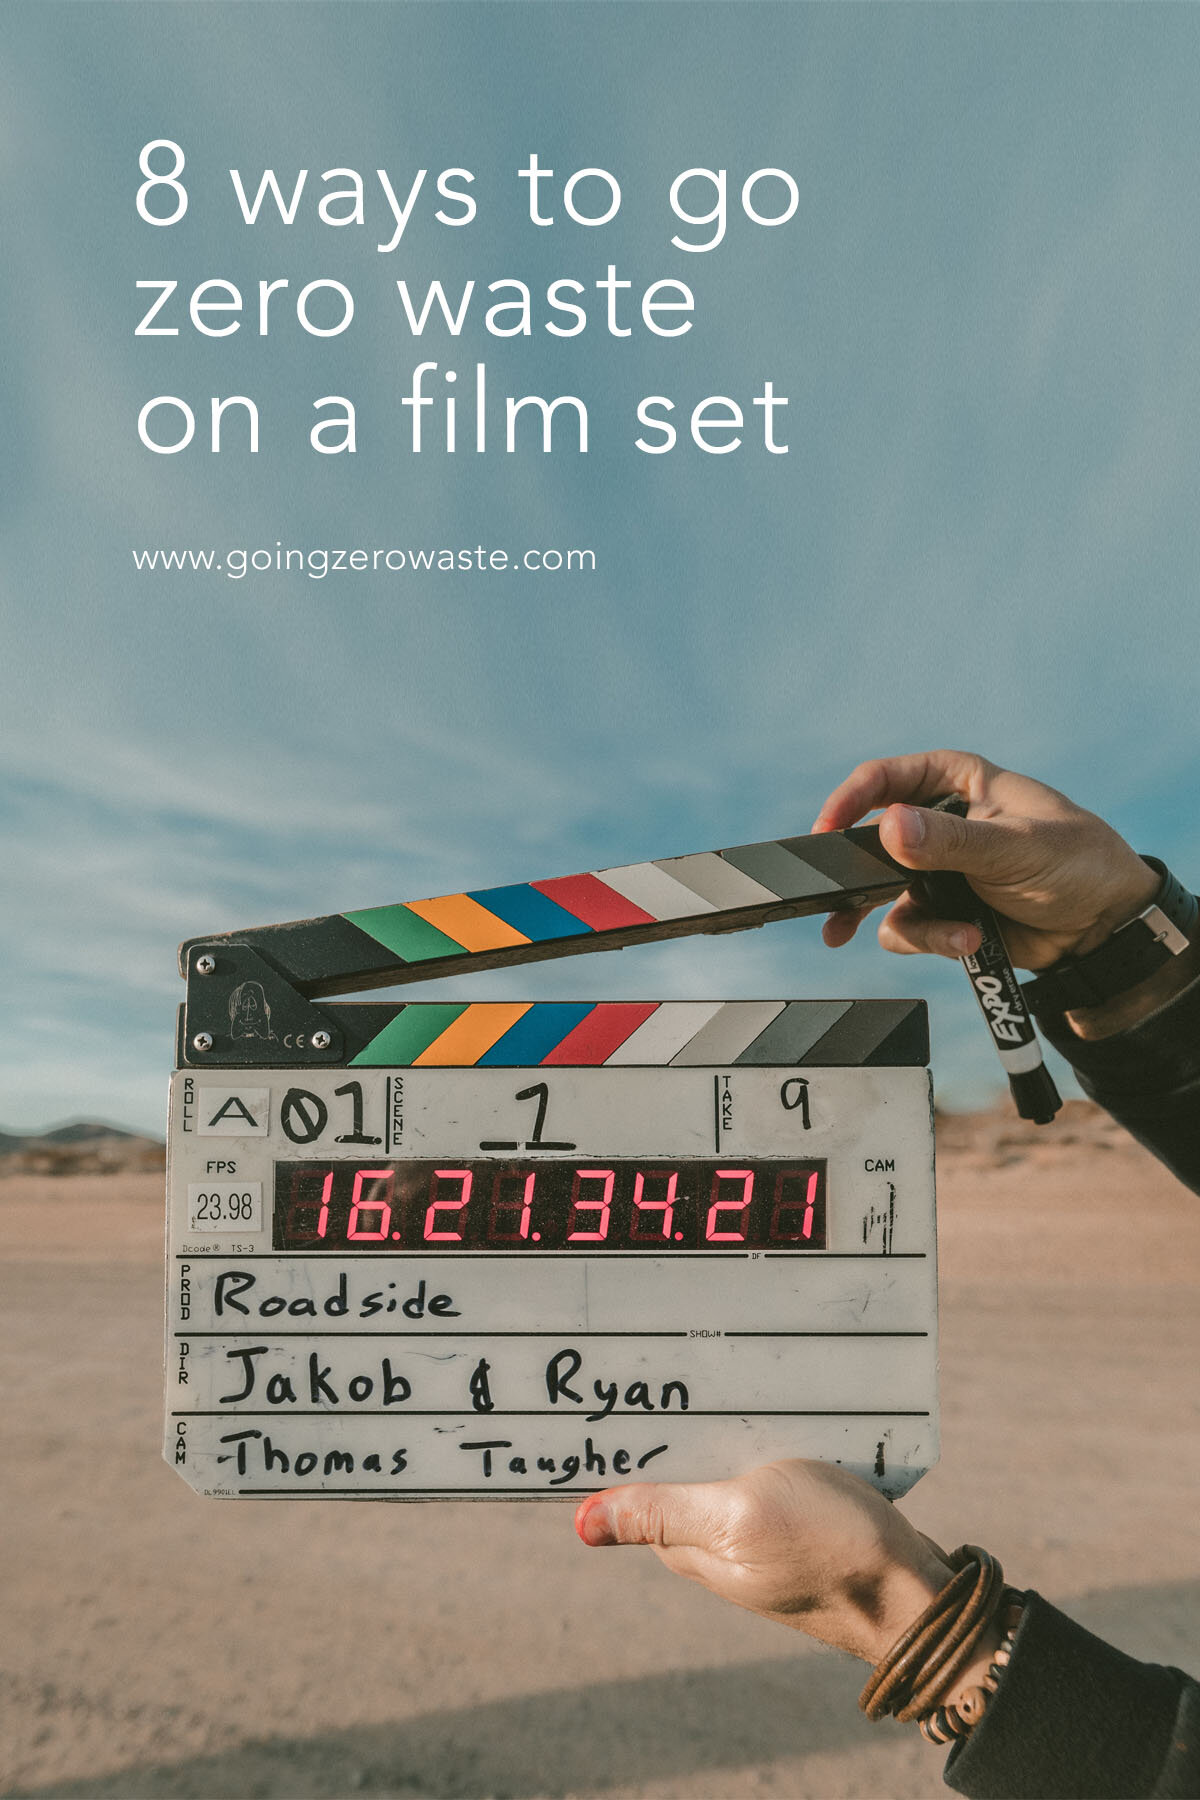 8 ways to go zero waste on a film set from www.goingzerowaste.com #film #movie #shortfilm #sustainable #ecofriendly #art #featurefilm #movies #makingmovies